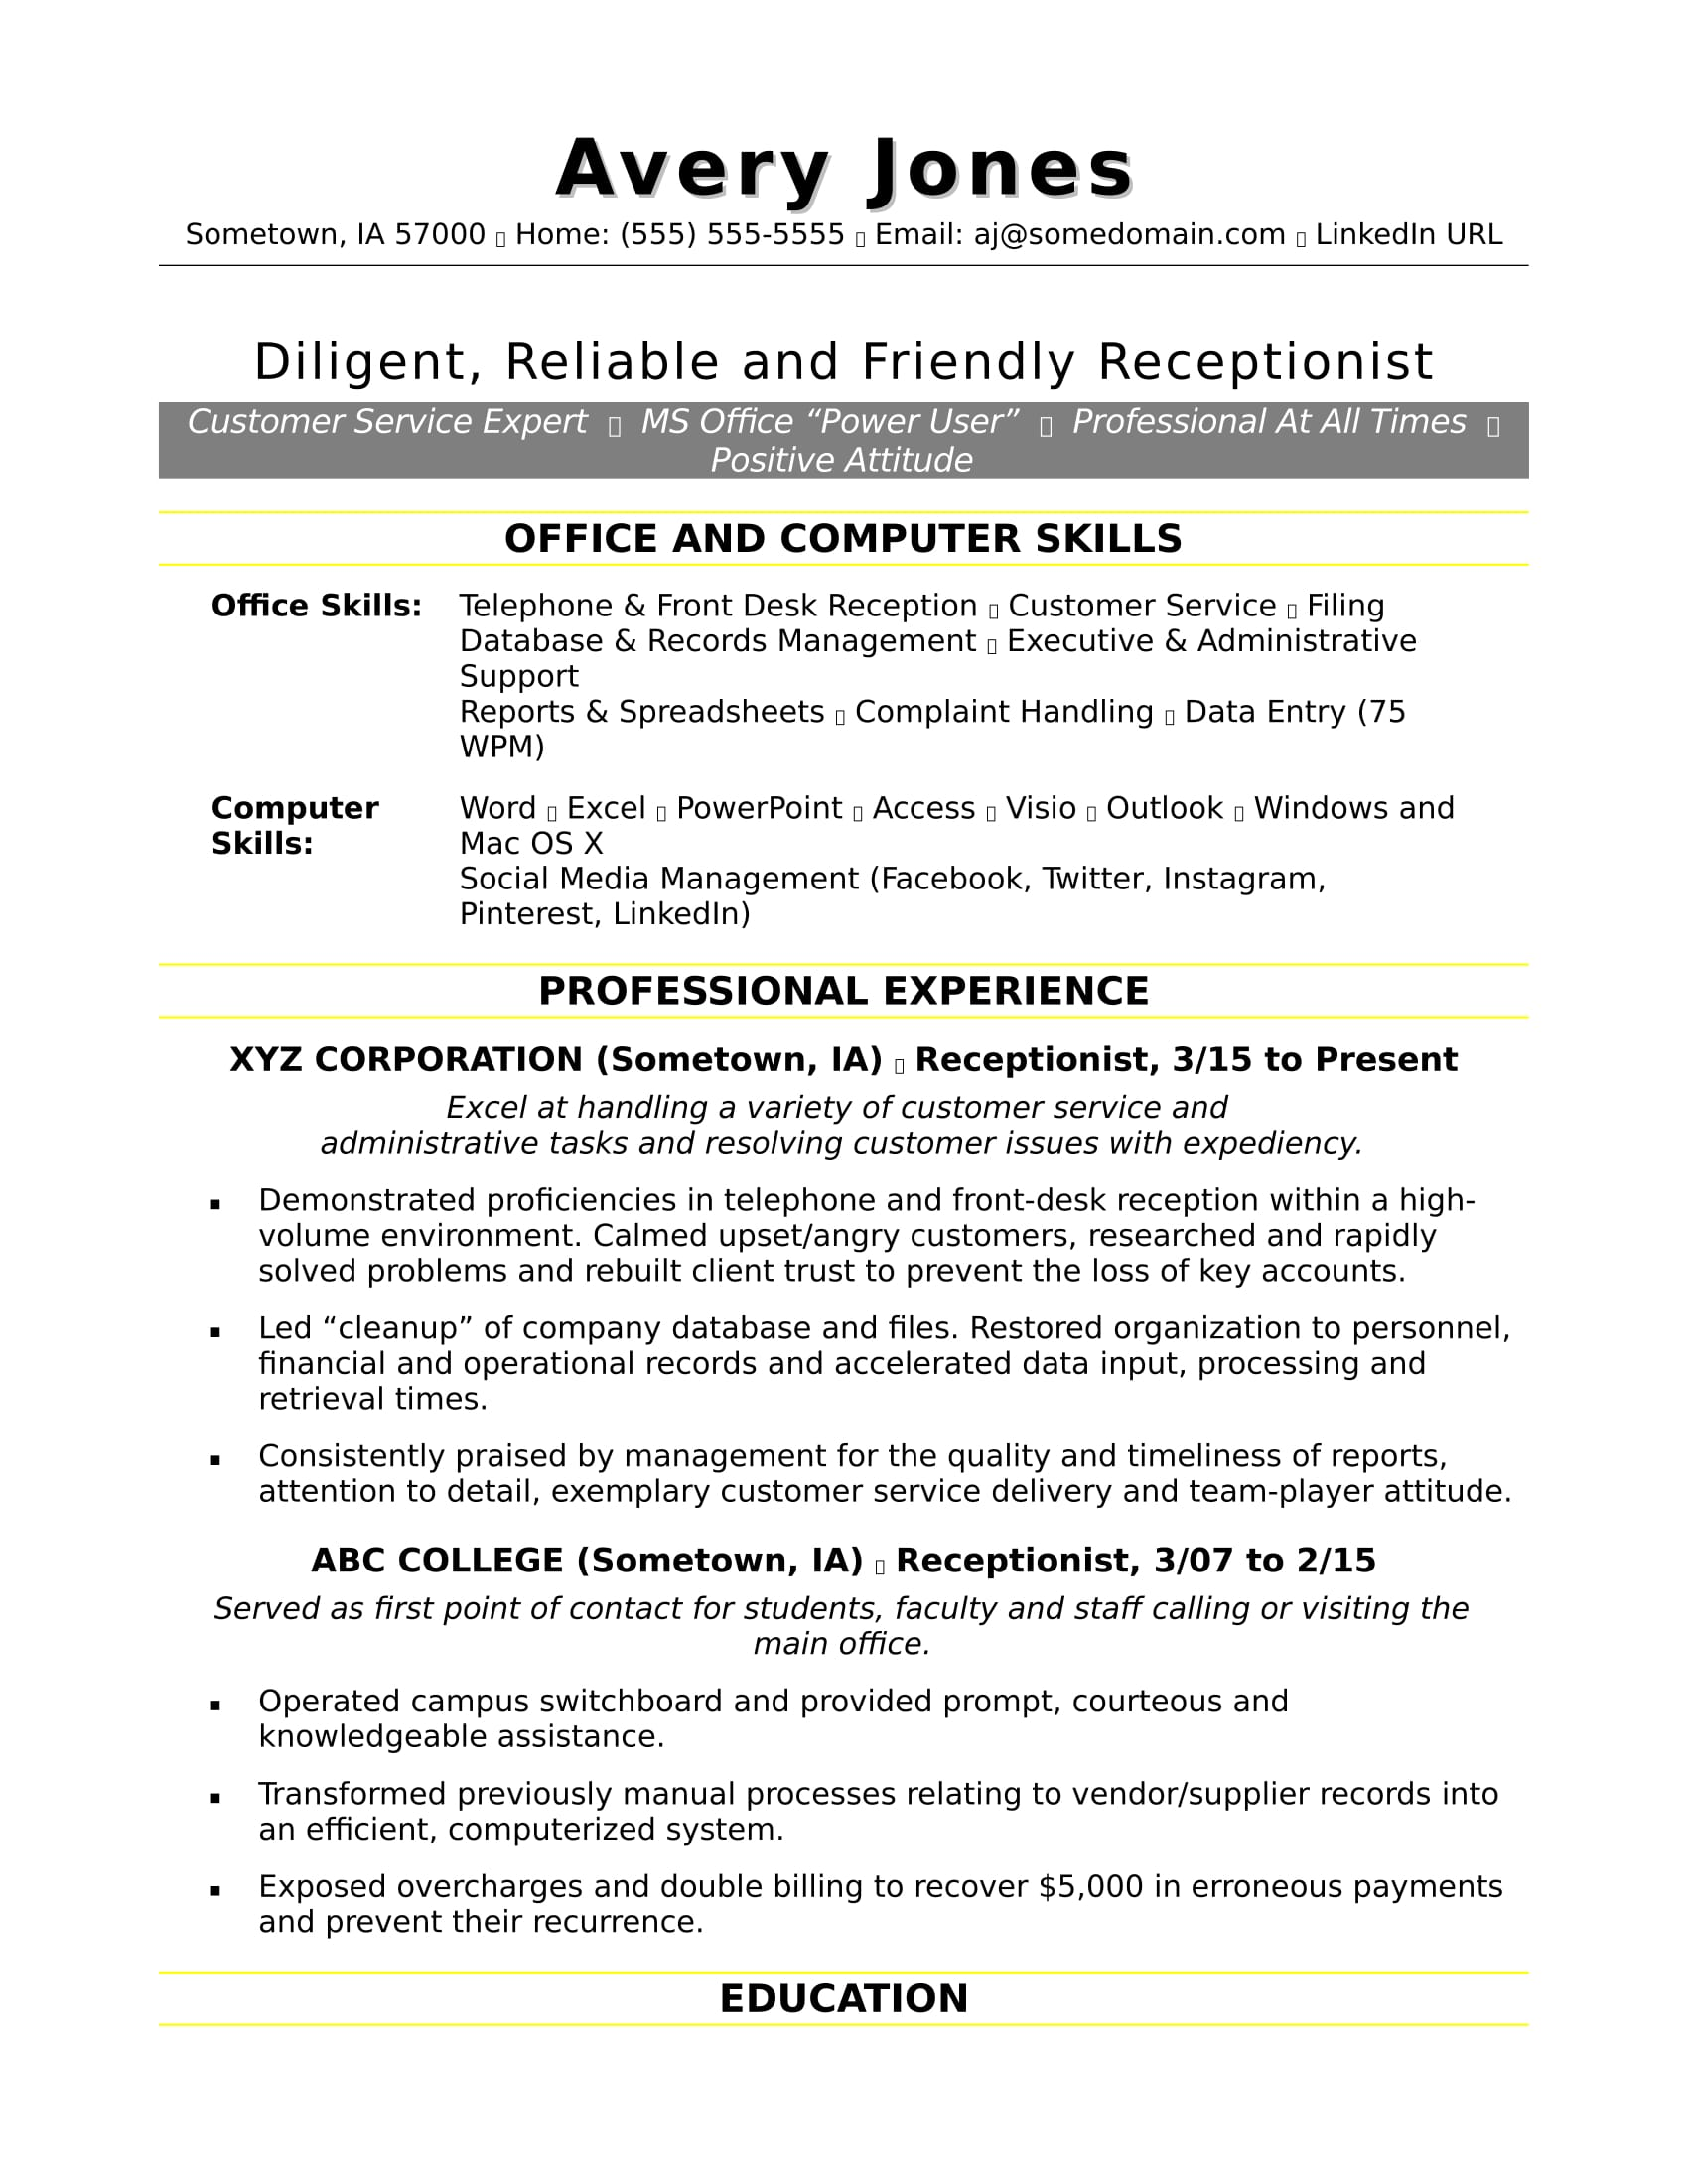 receptionist resume sample monster office and computer skills for construction experience Resume Office And Computer Skills For Resume